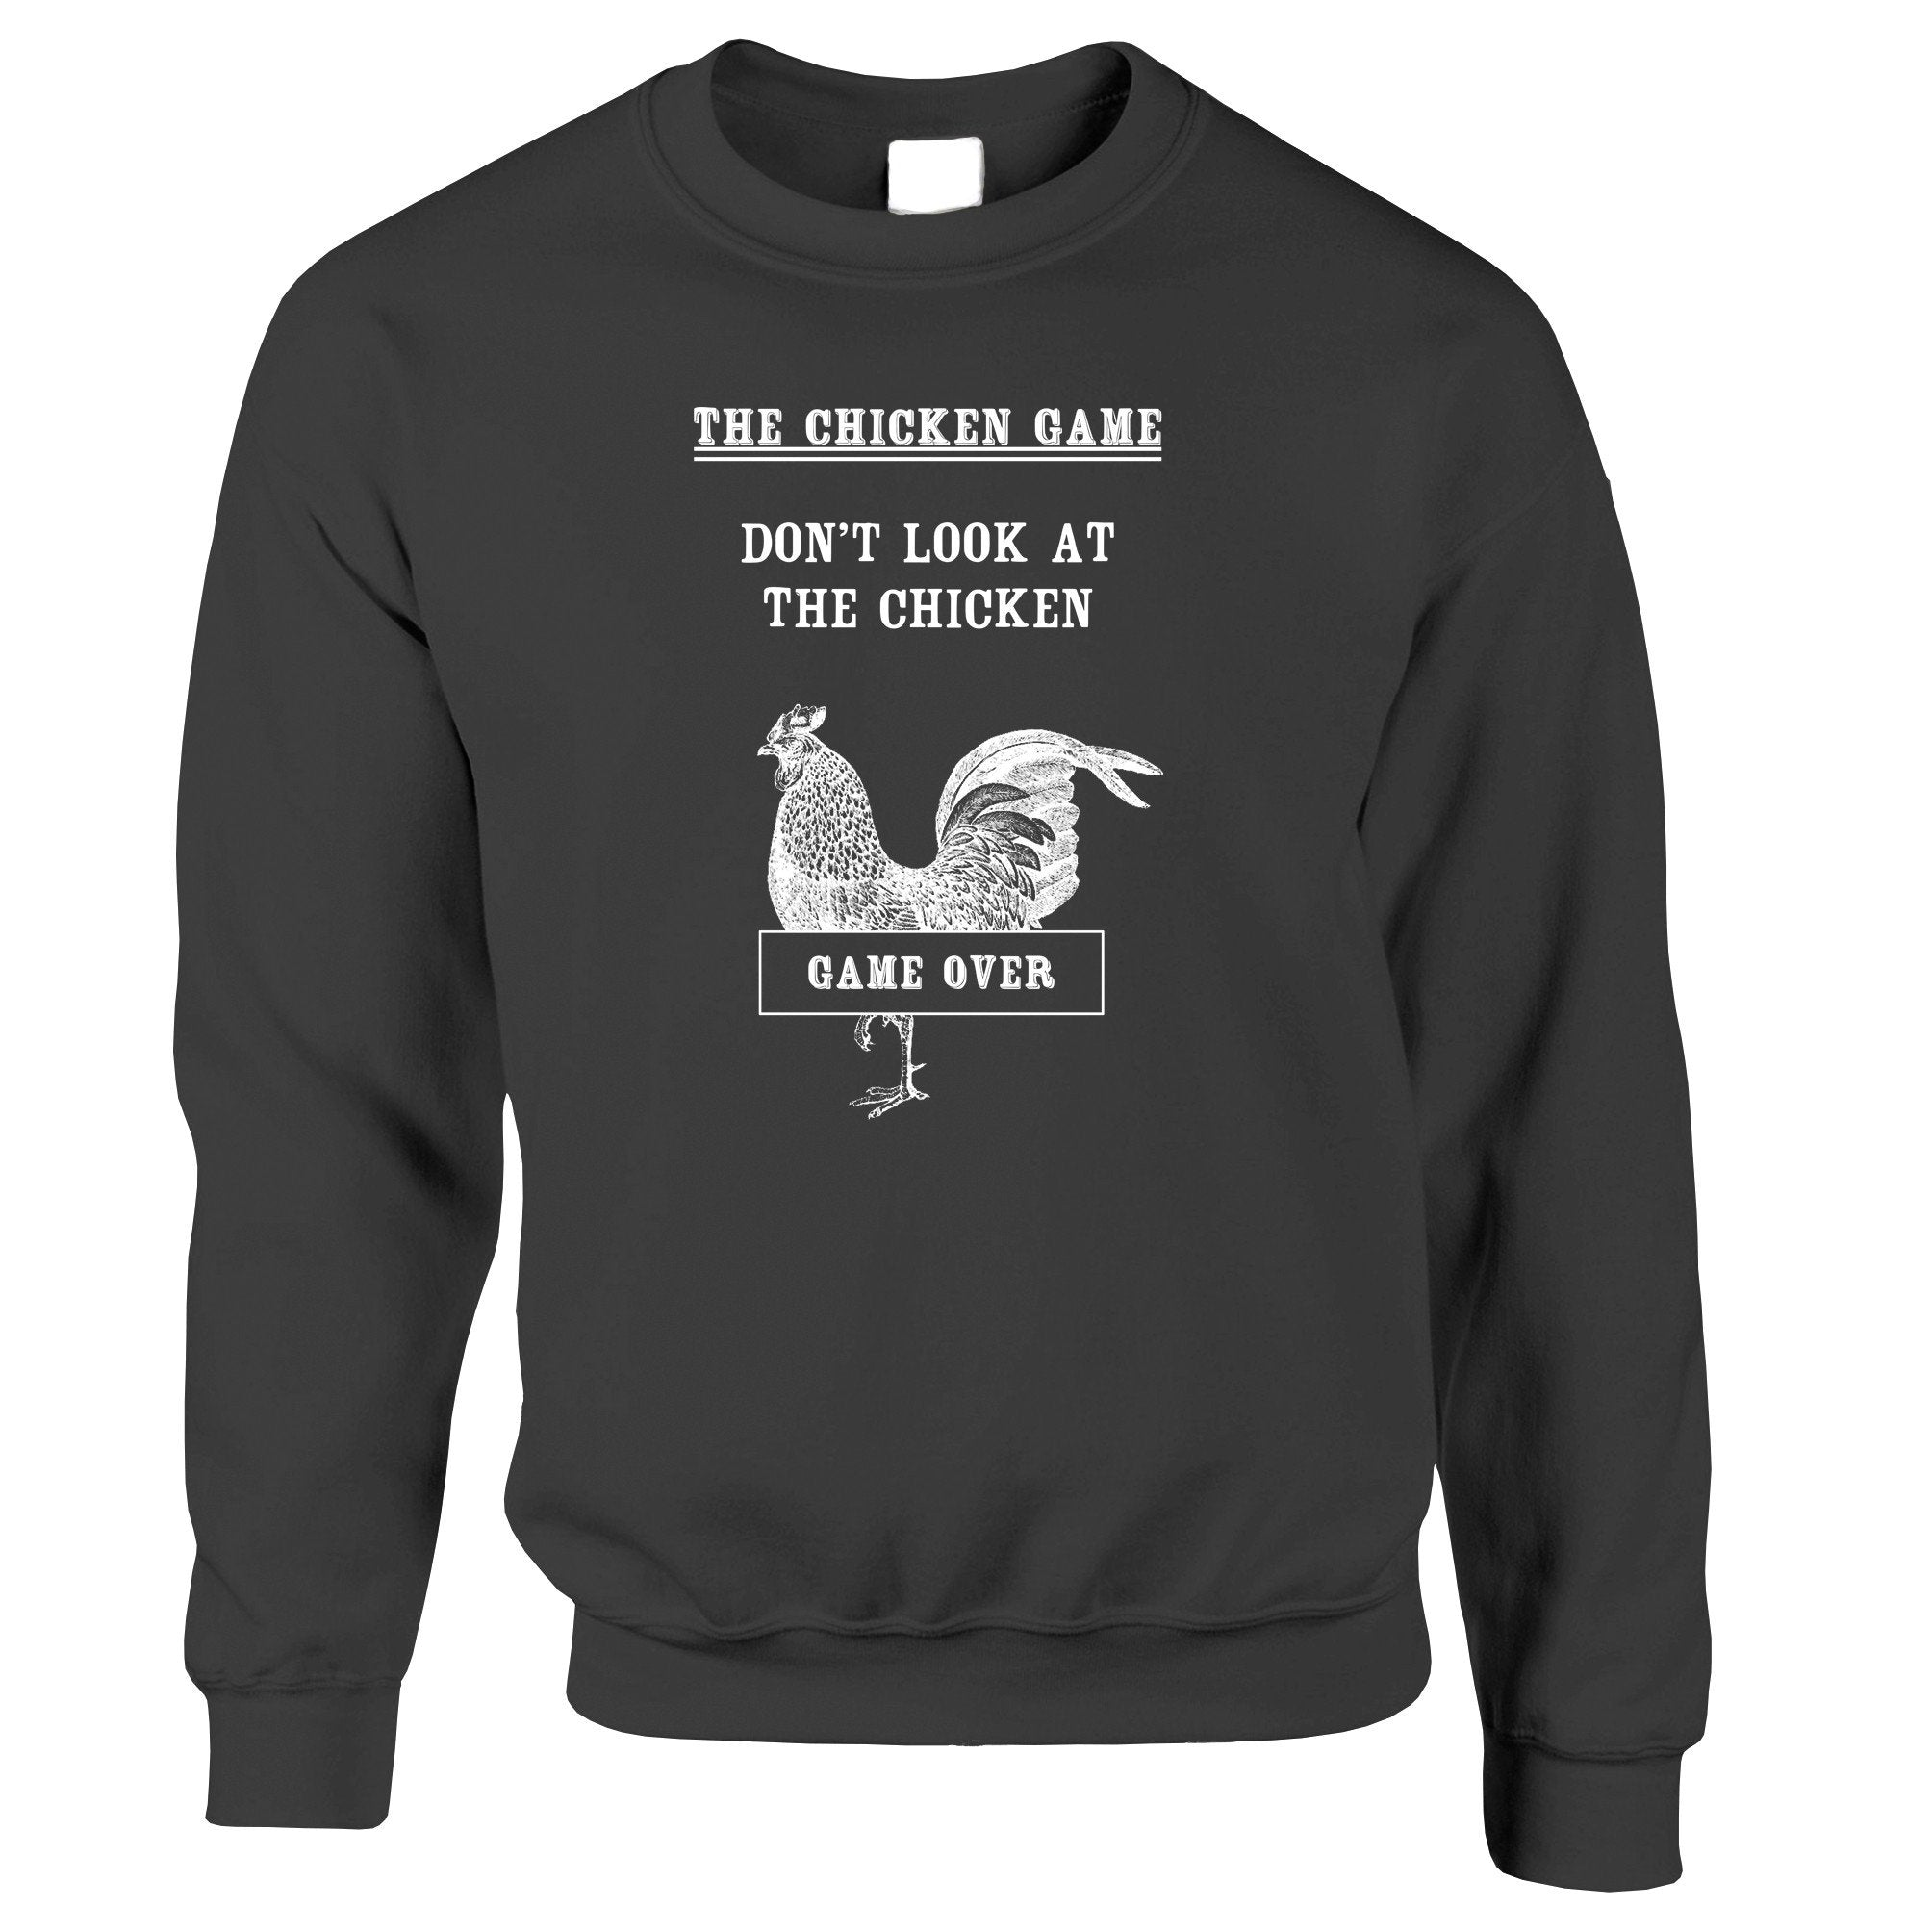 Novelty Jumper Don't Look At The Chicken Game Joke Sweatshirt Sweater